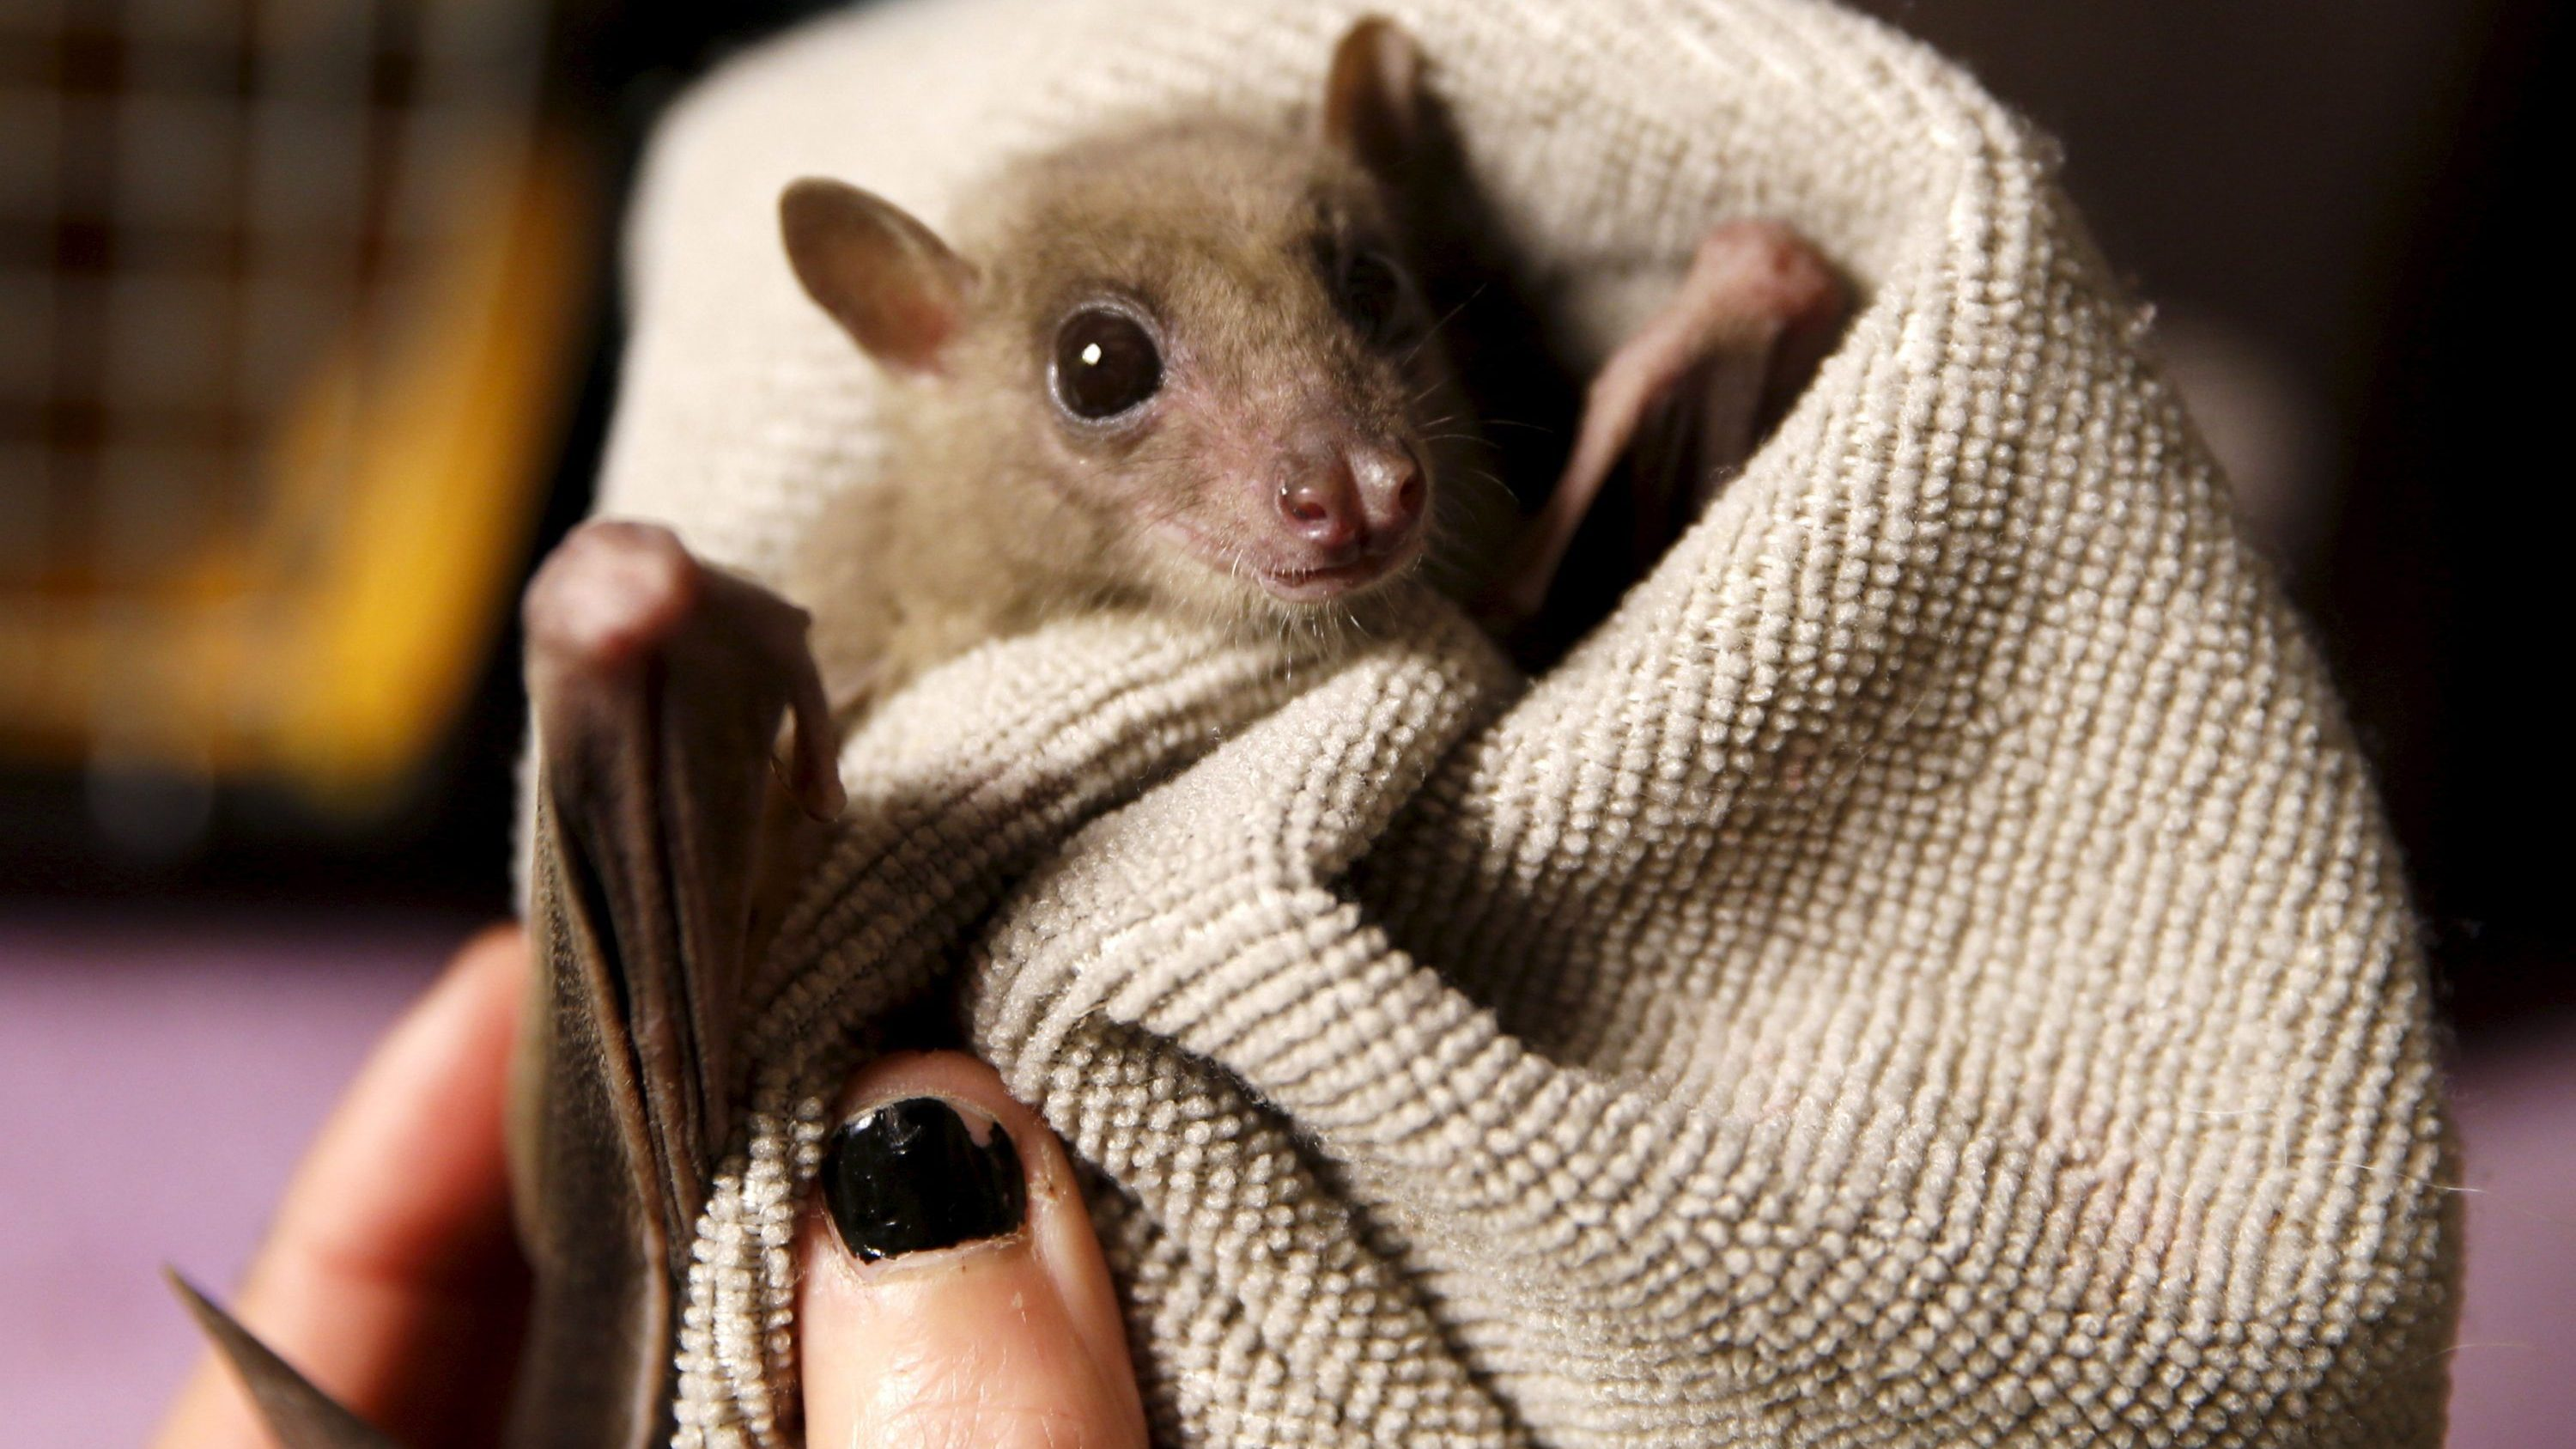 Bats can swim in water and you can do anything you put your mind to